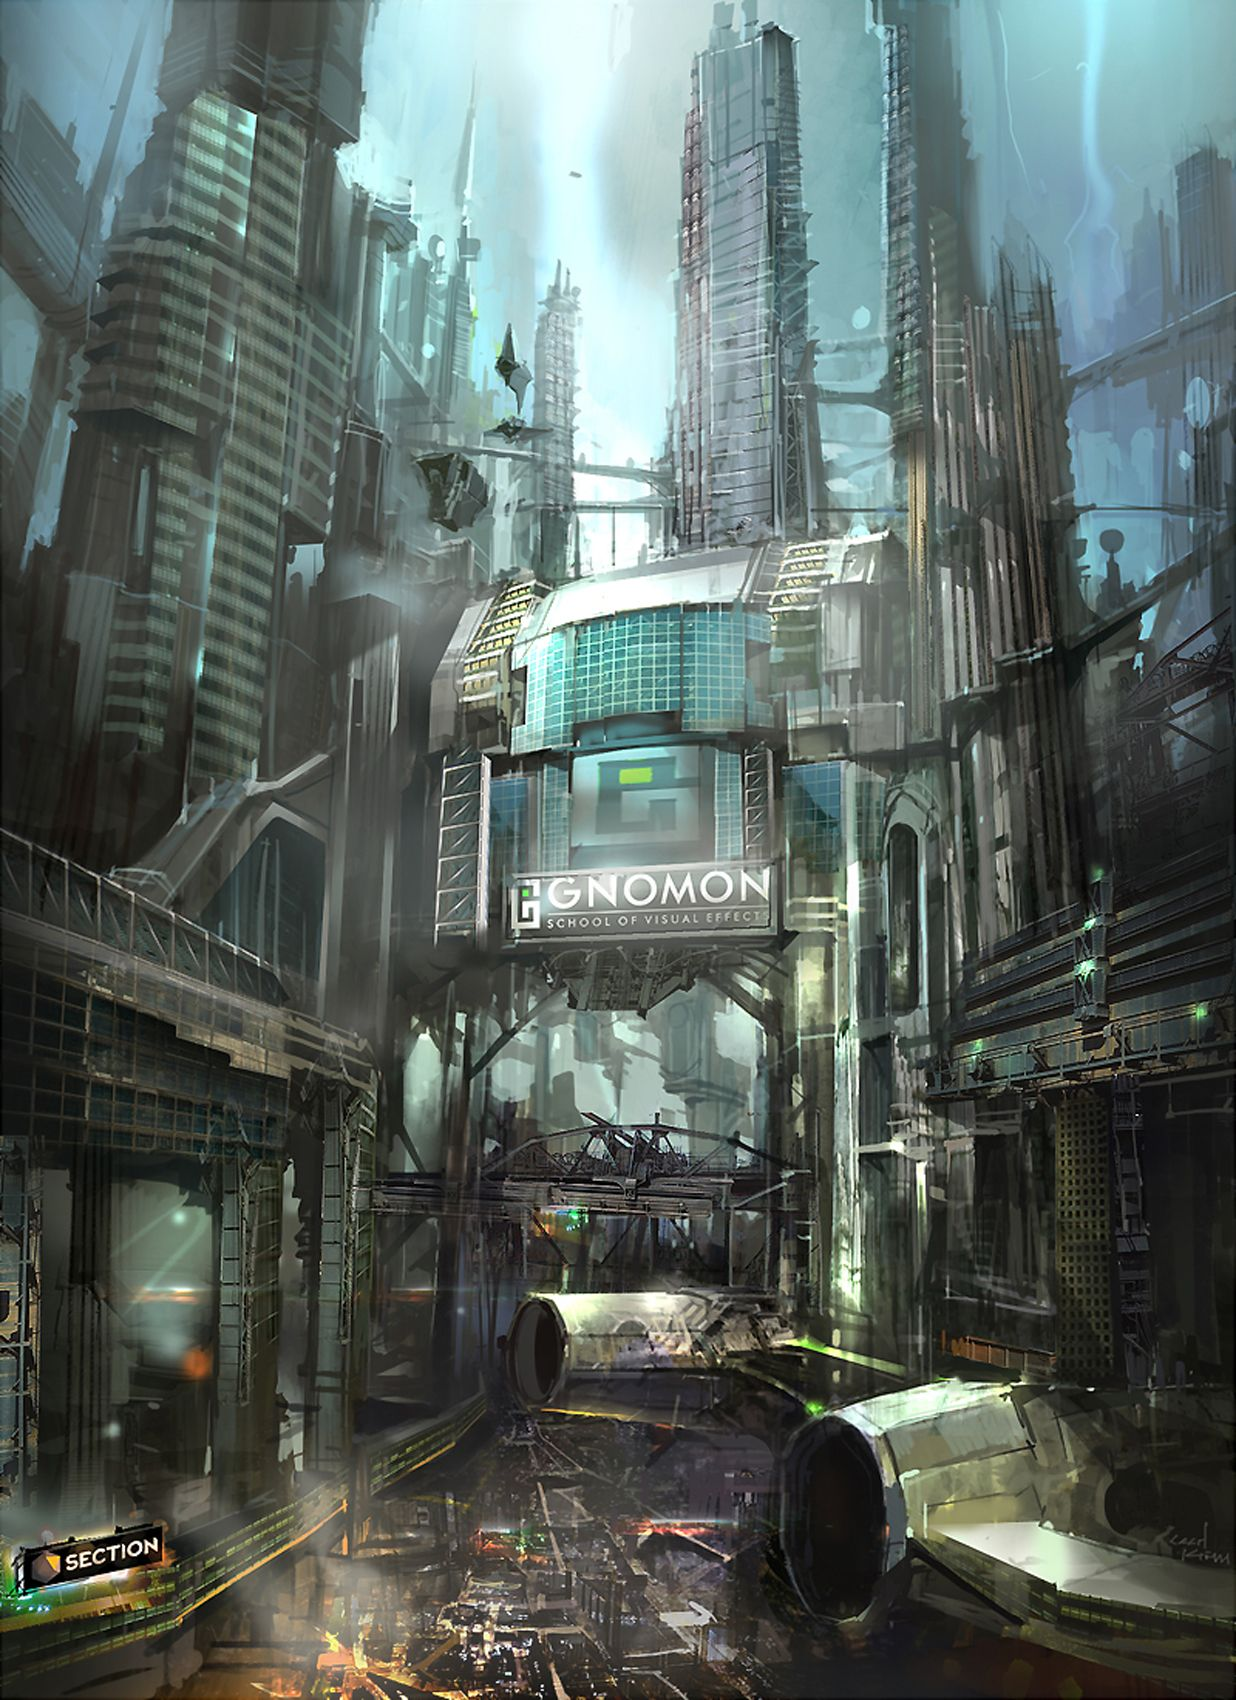 Destroyed City Background (62+ images) |Future Destroyed City